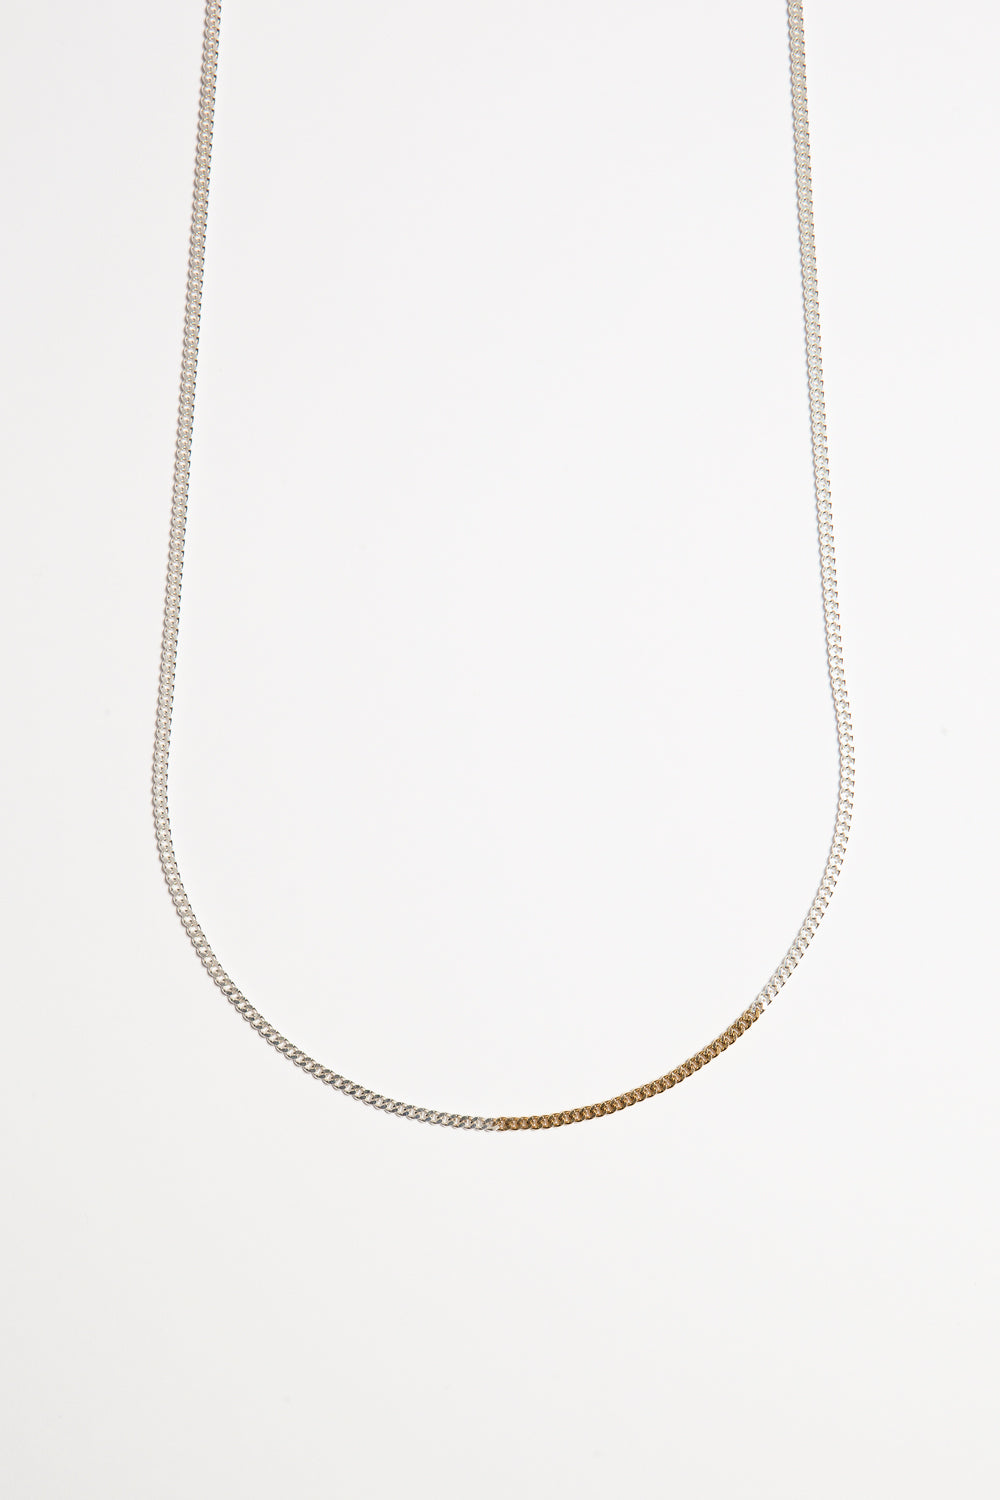 Necklace No.10 by Johanna Gauder